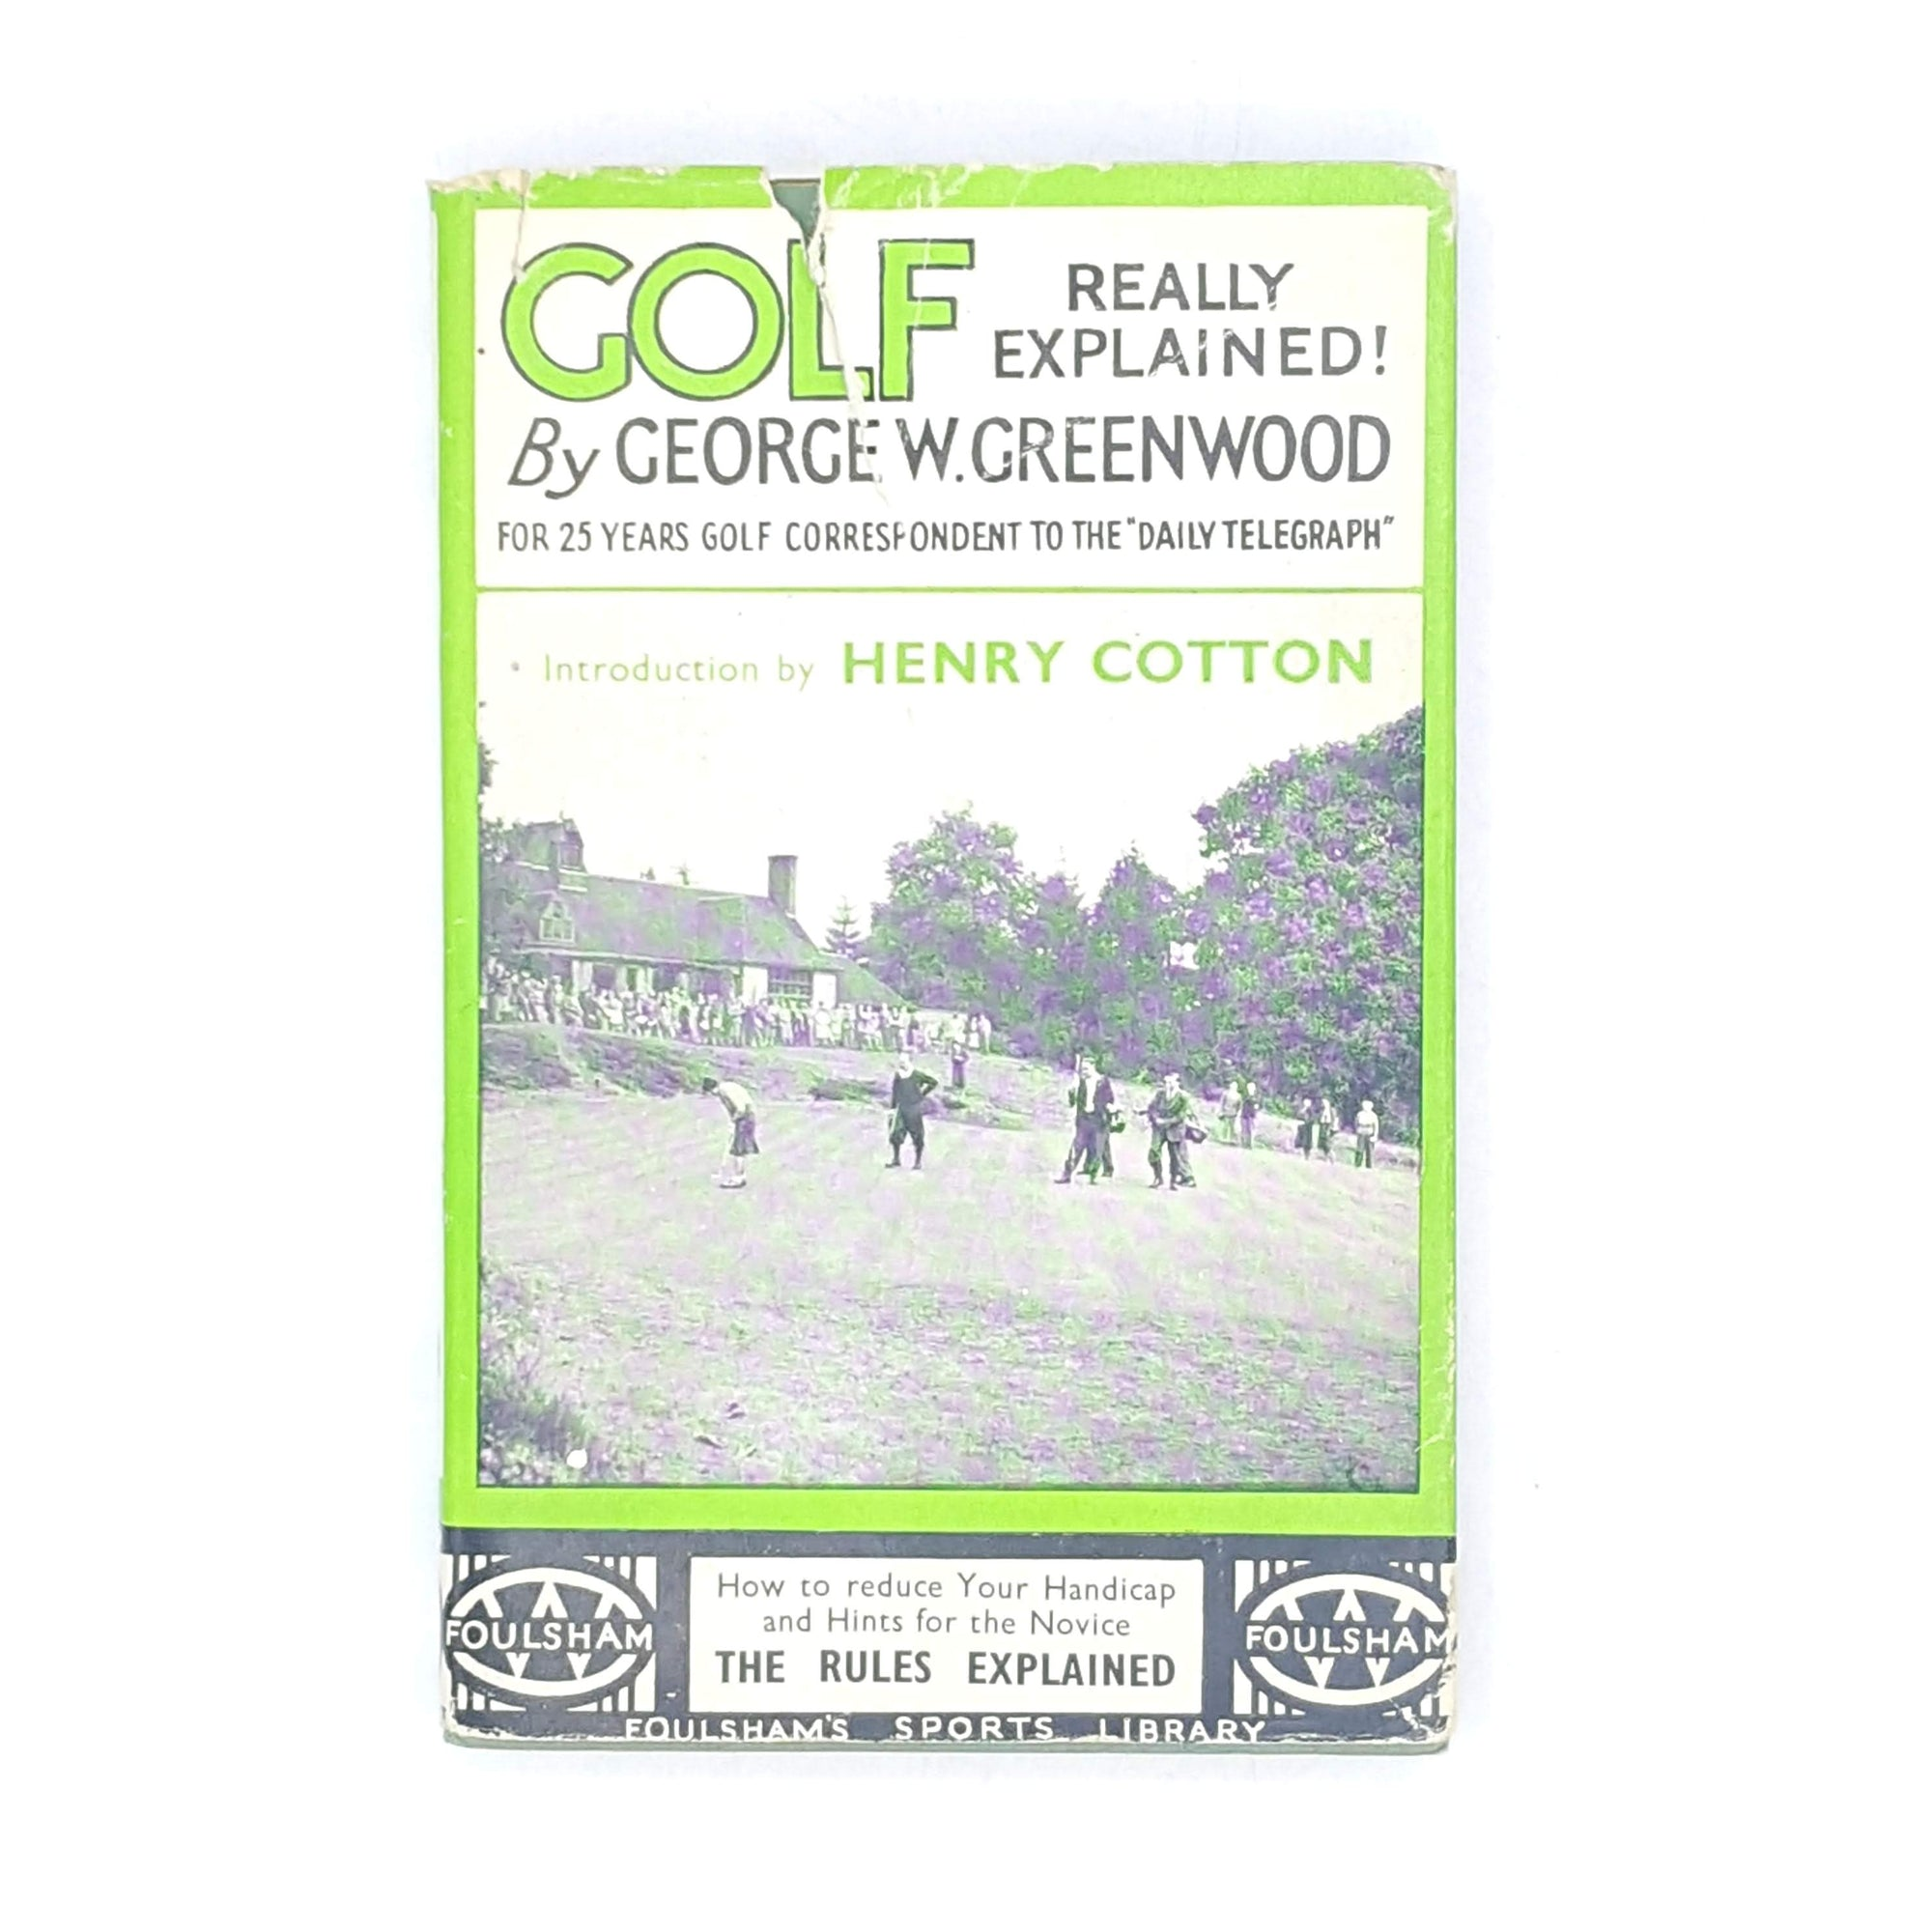 classic-old-decorative-books-patterned-country-house-library-pocket-size-green-antique-golf-really-explained-thrift-foulsham-henry-cotton-george-w-greenwood-vintage-